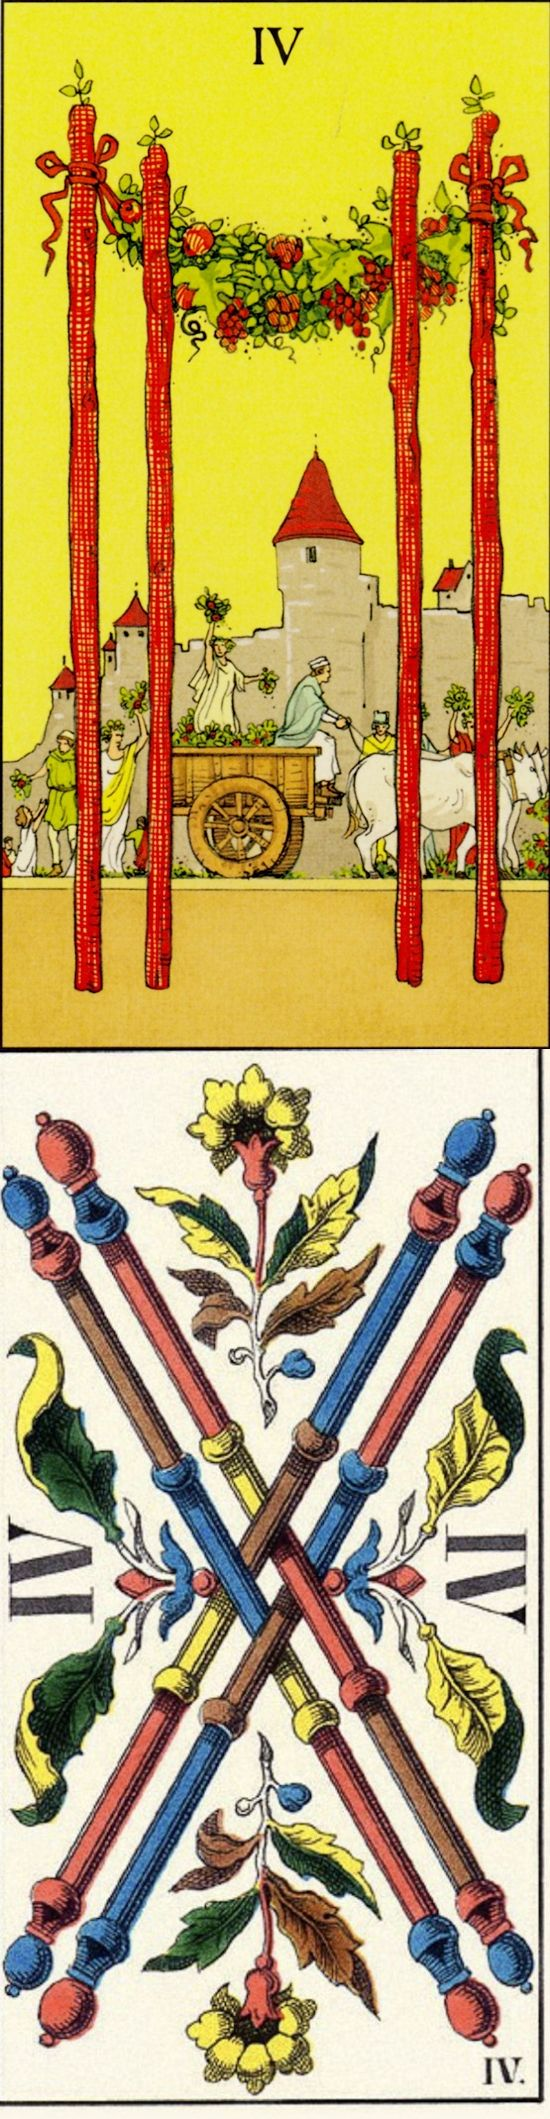 Four of Wands: homecoming and discord (reverse). After Tarot Tarot deck and JJ Swiss Tarot deck: tarotguidebook, tarot reading meaning and yes or no tarot accurate. New guessing booth and tarot. #witch #chariot #paganism #halloween